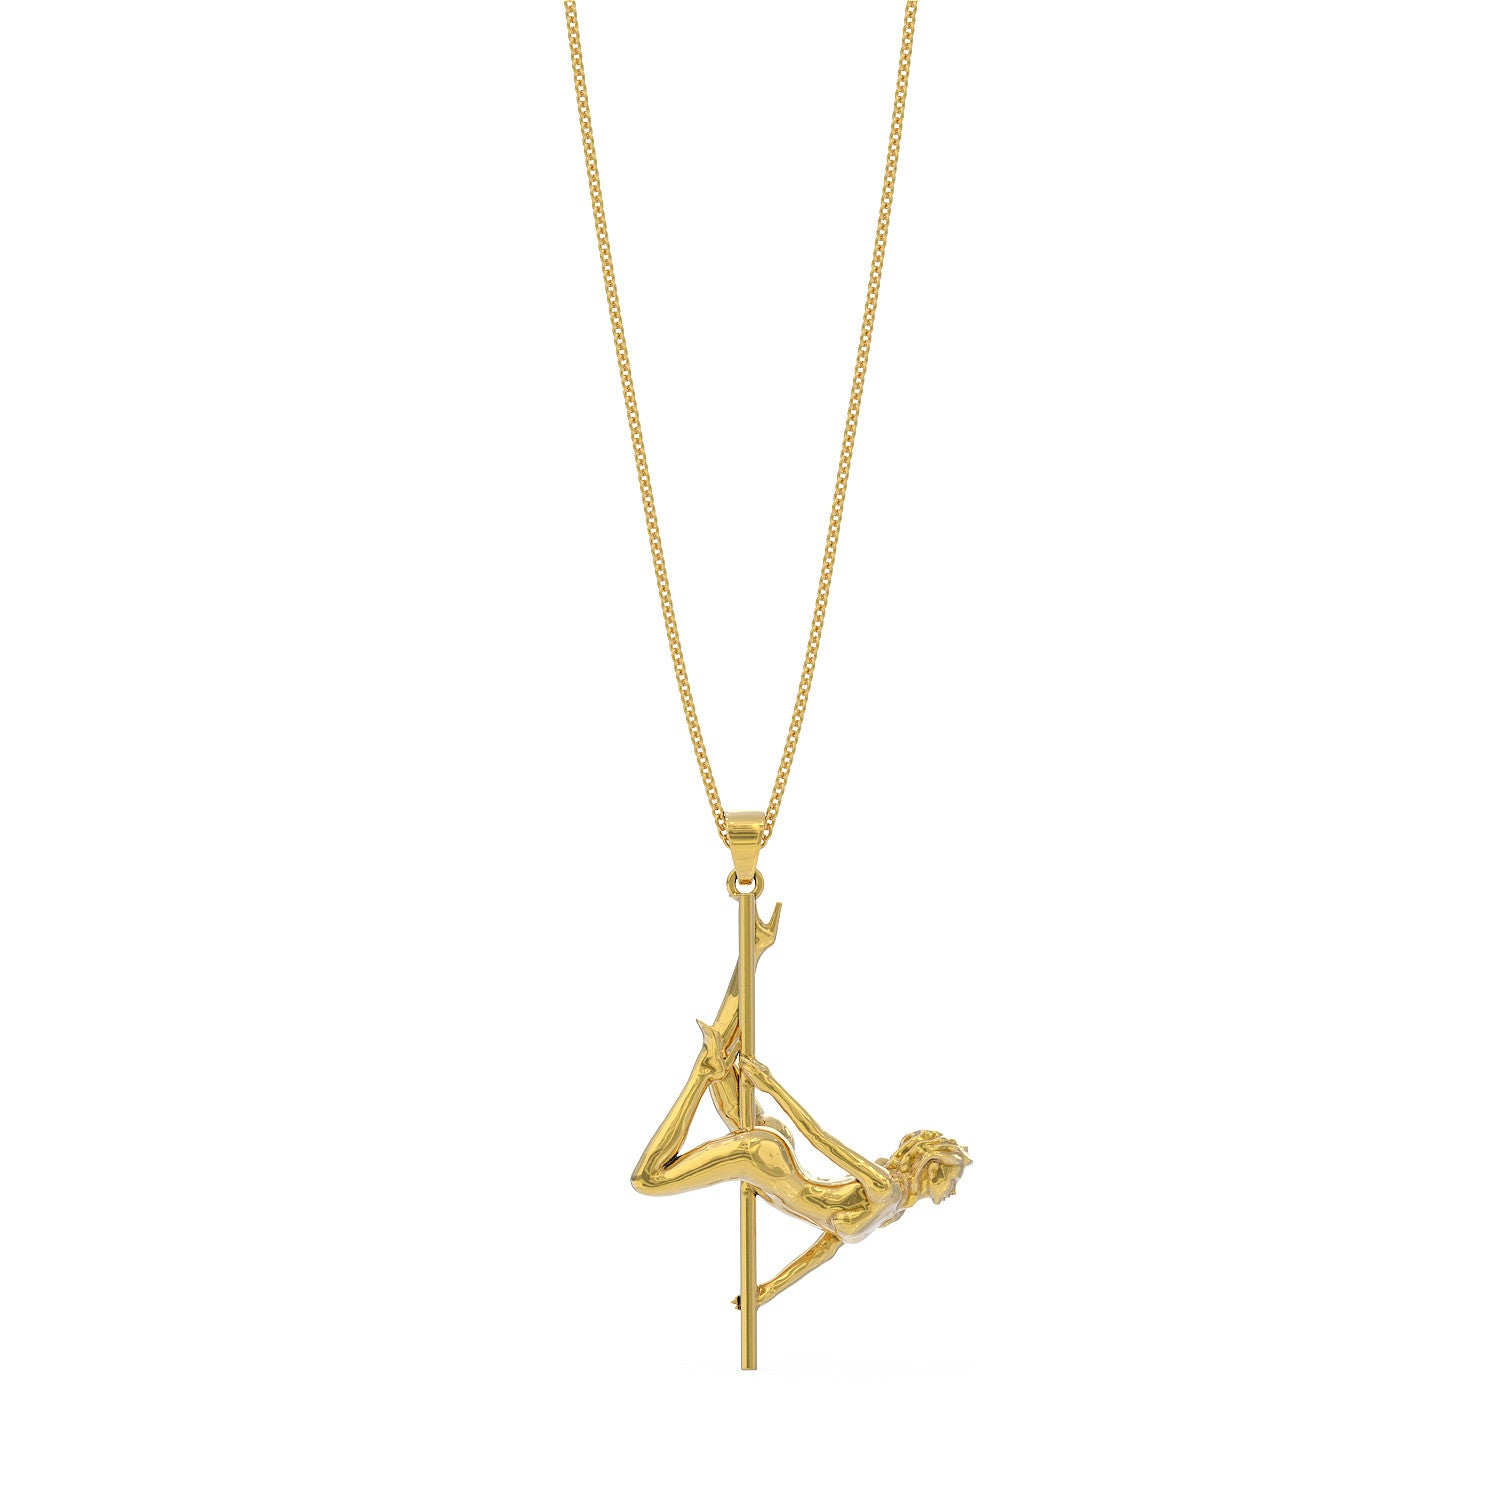 Pole Dancer Necklace - STRICTLY LIMITED EDITION